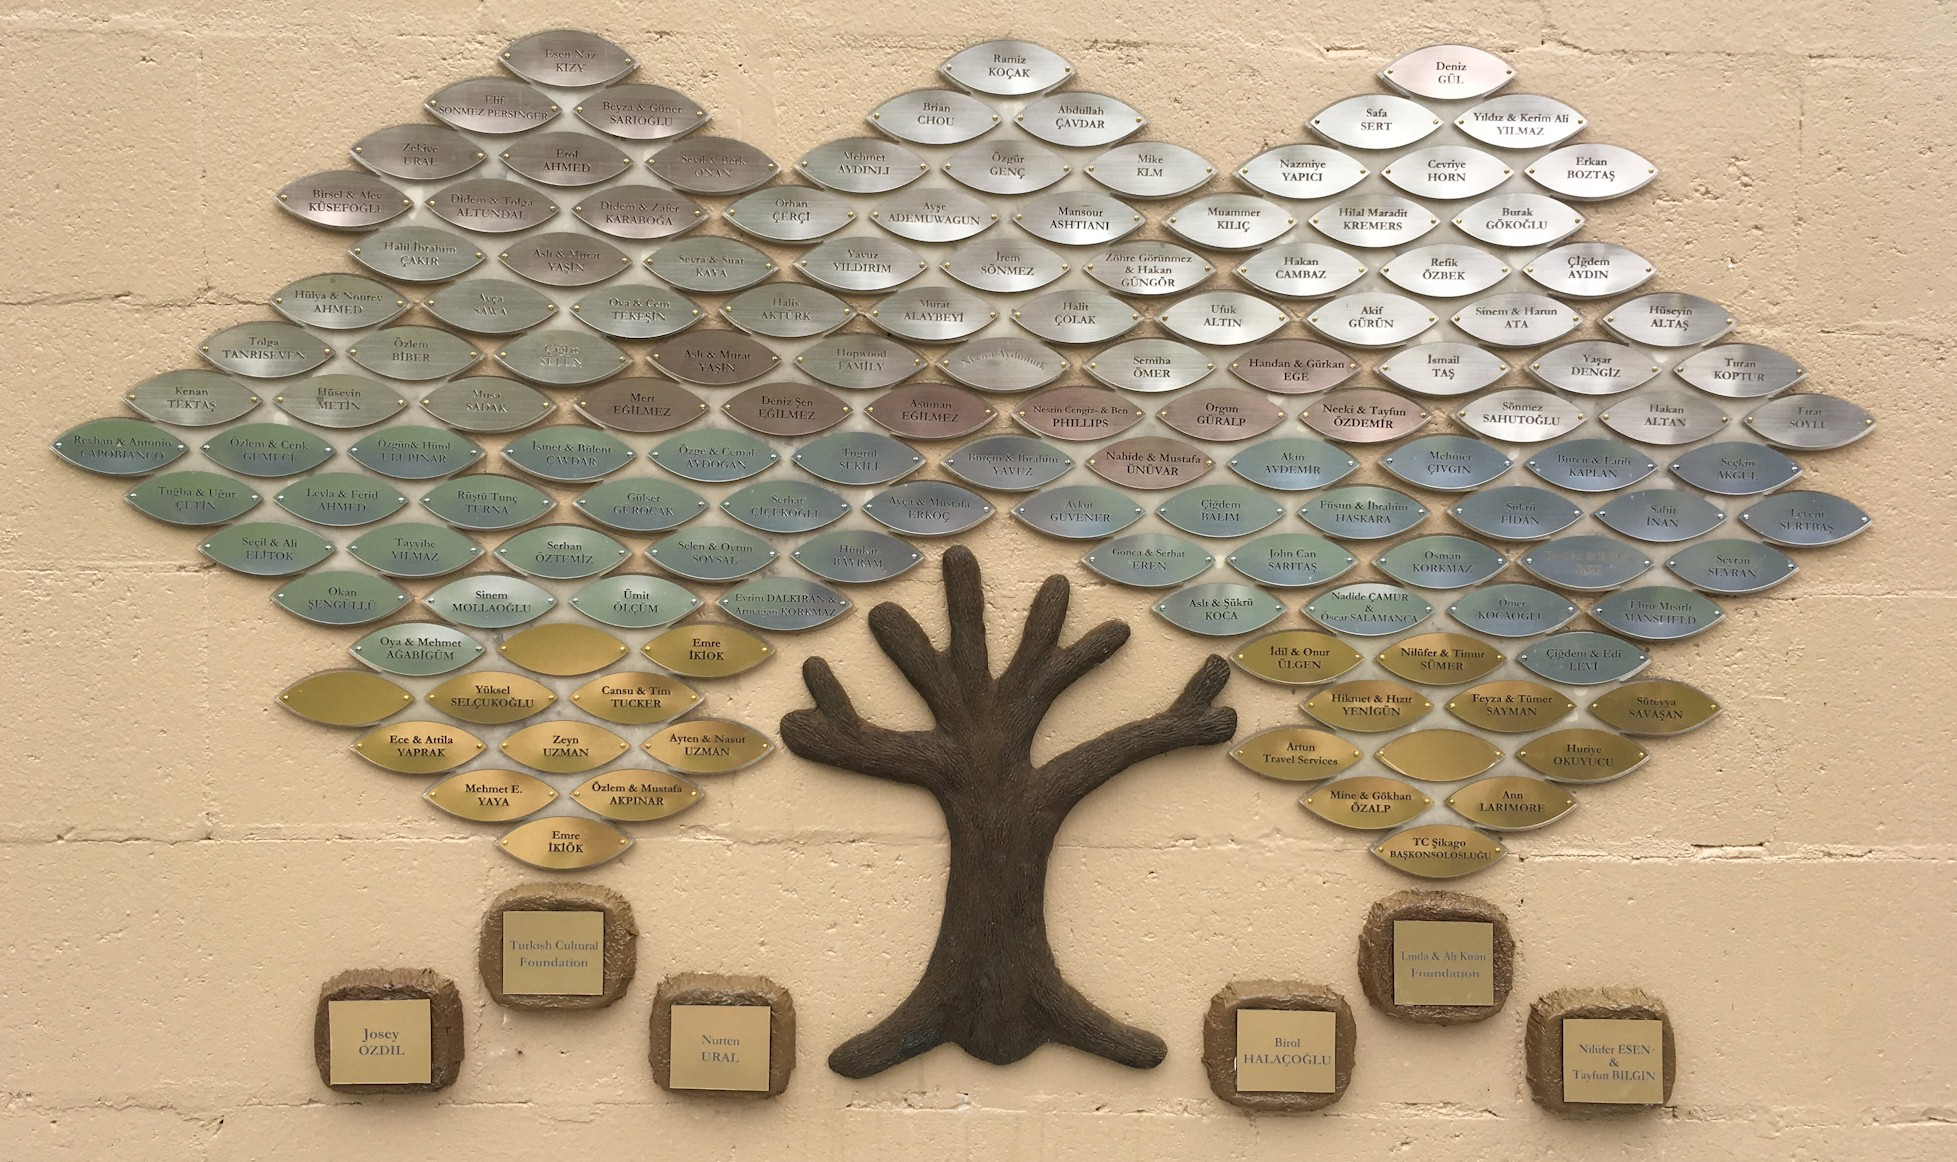 Ataturk Park Donation Tree